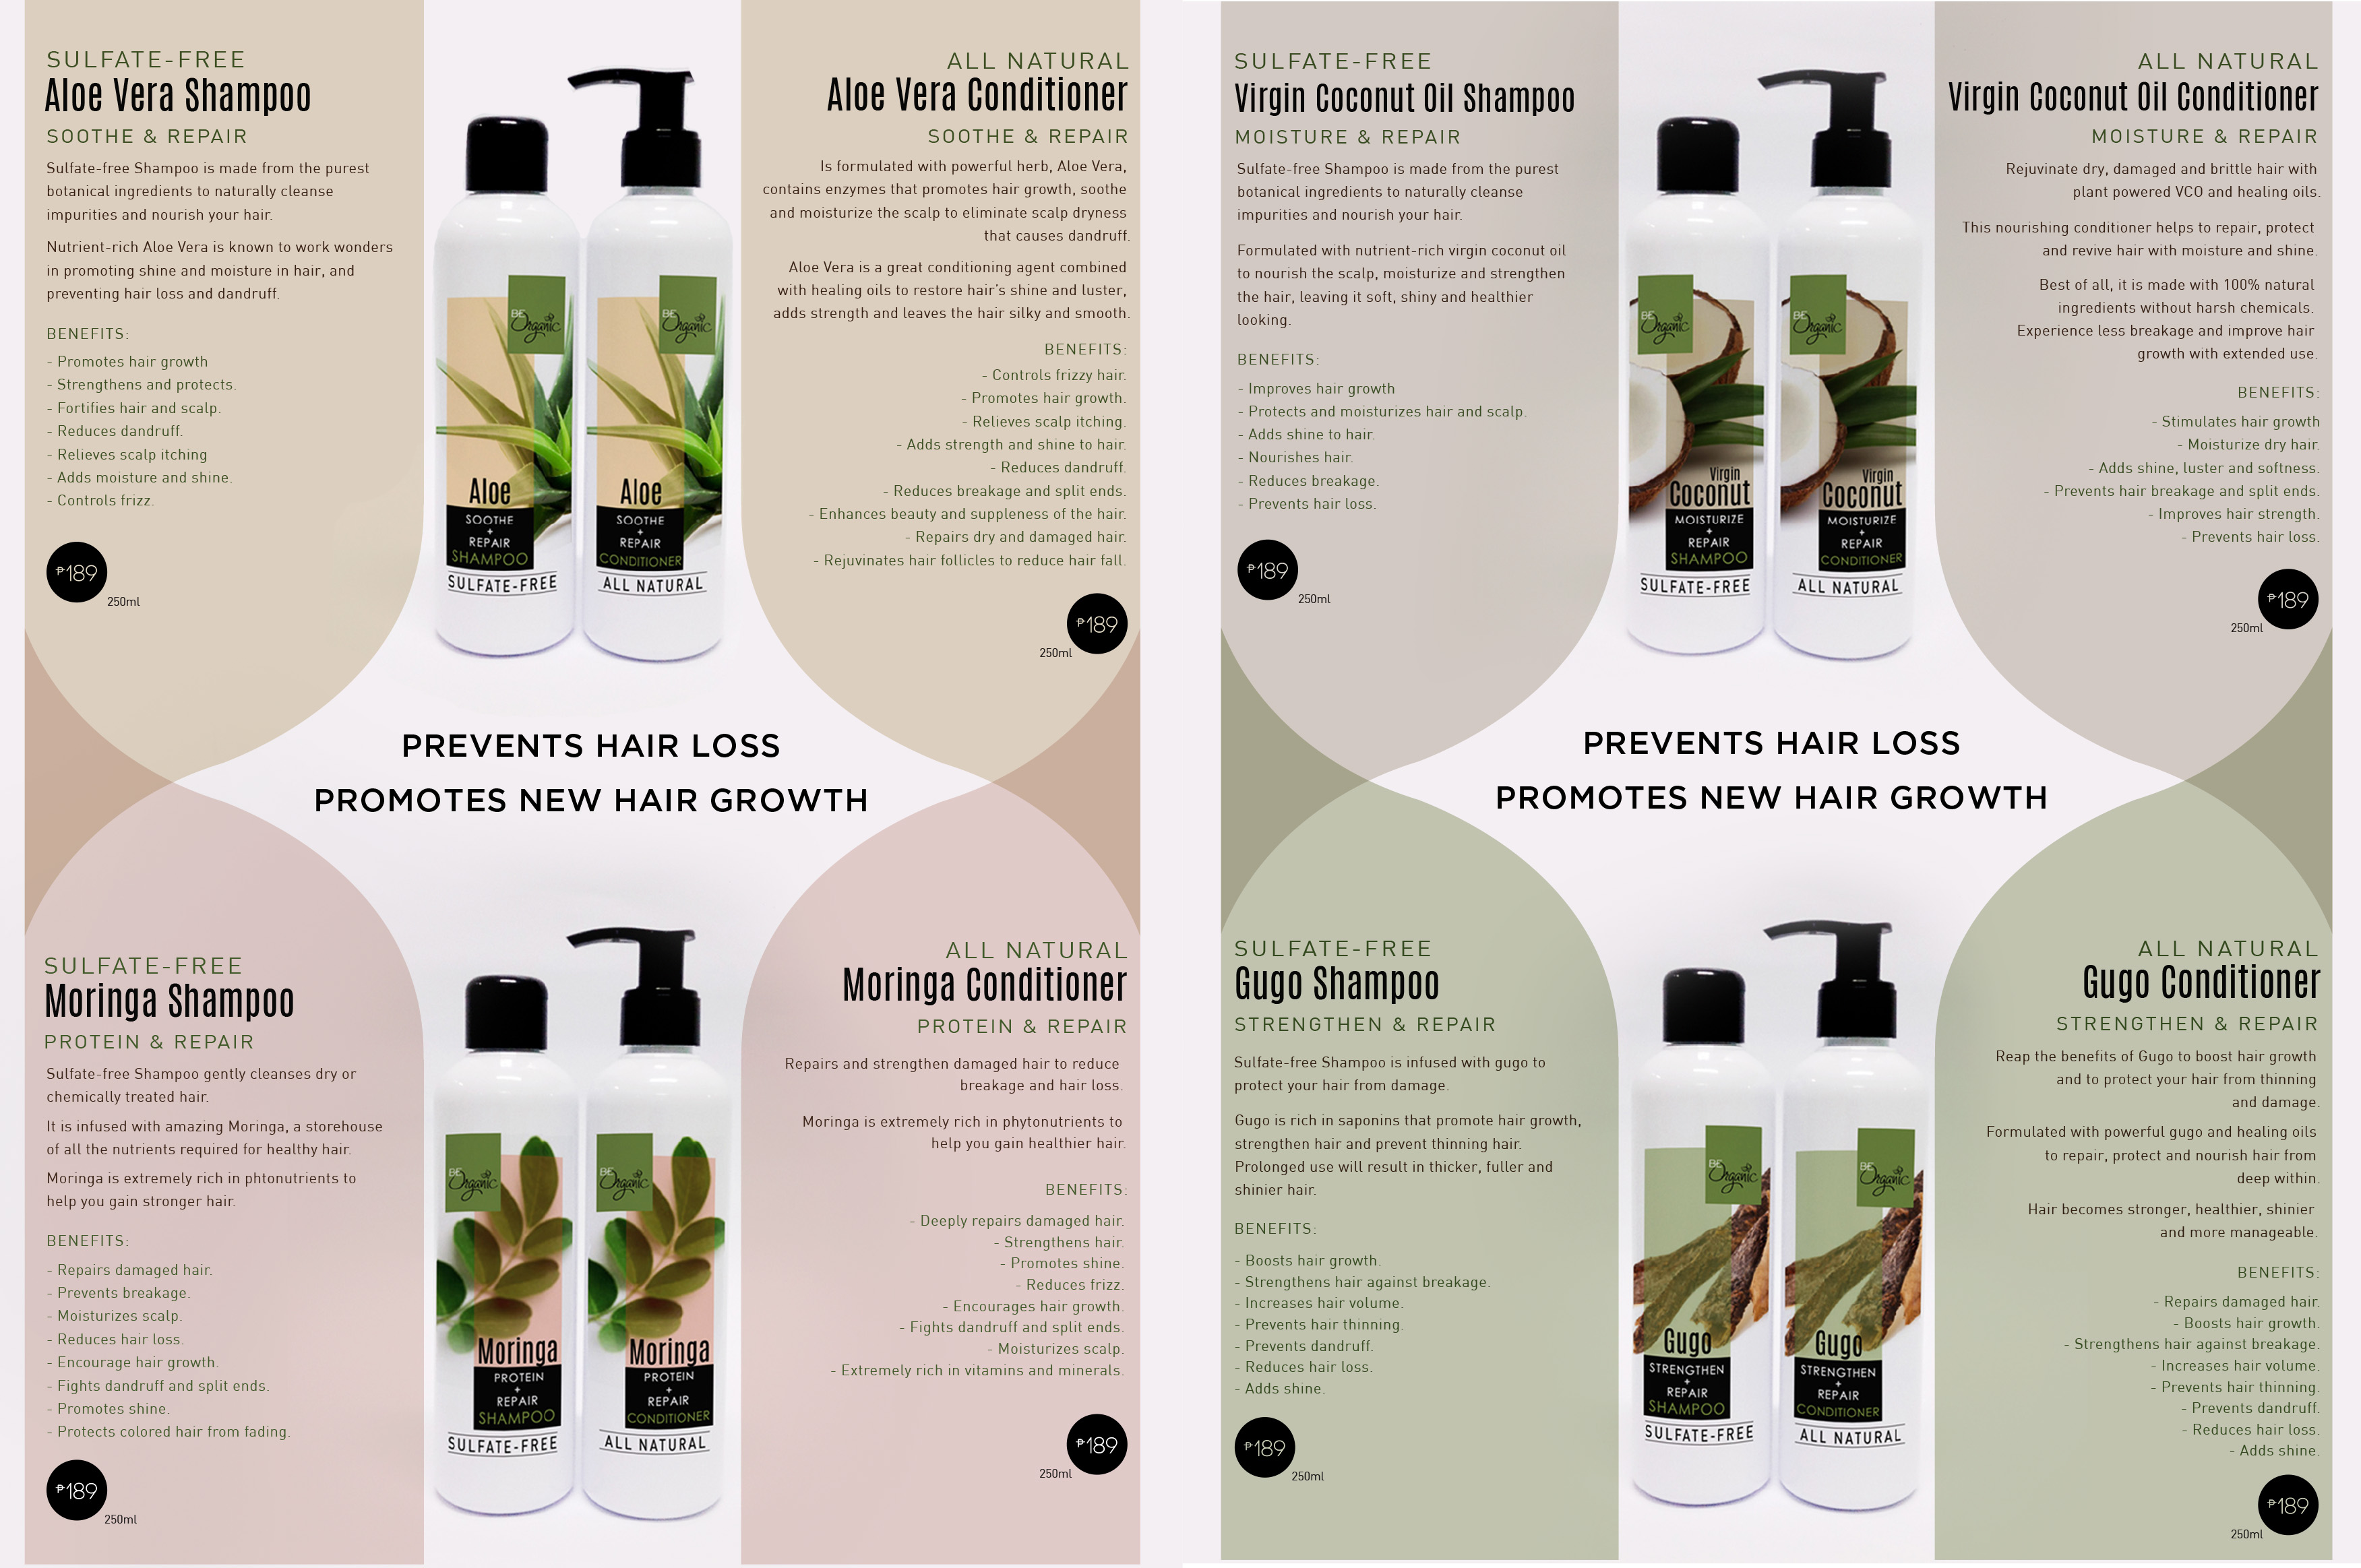 All Natural Shampoos and Conditioners